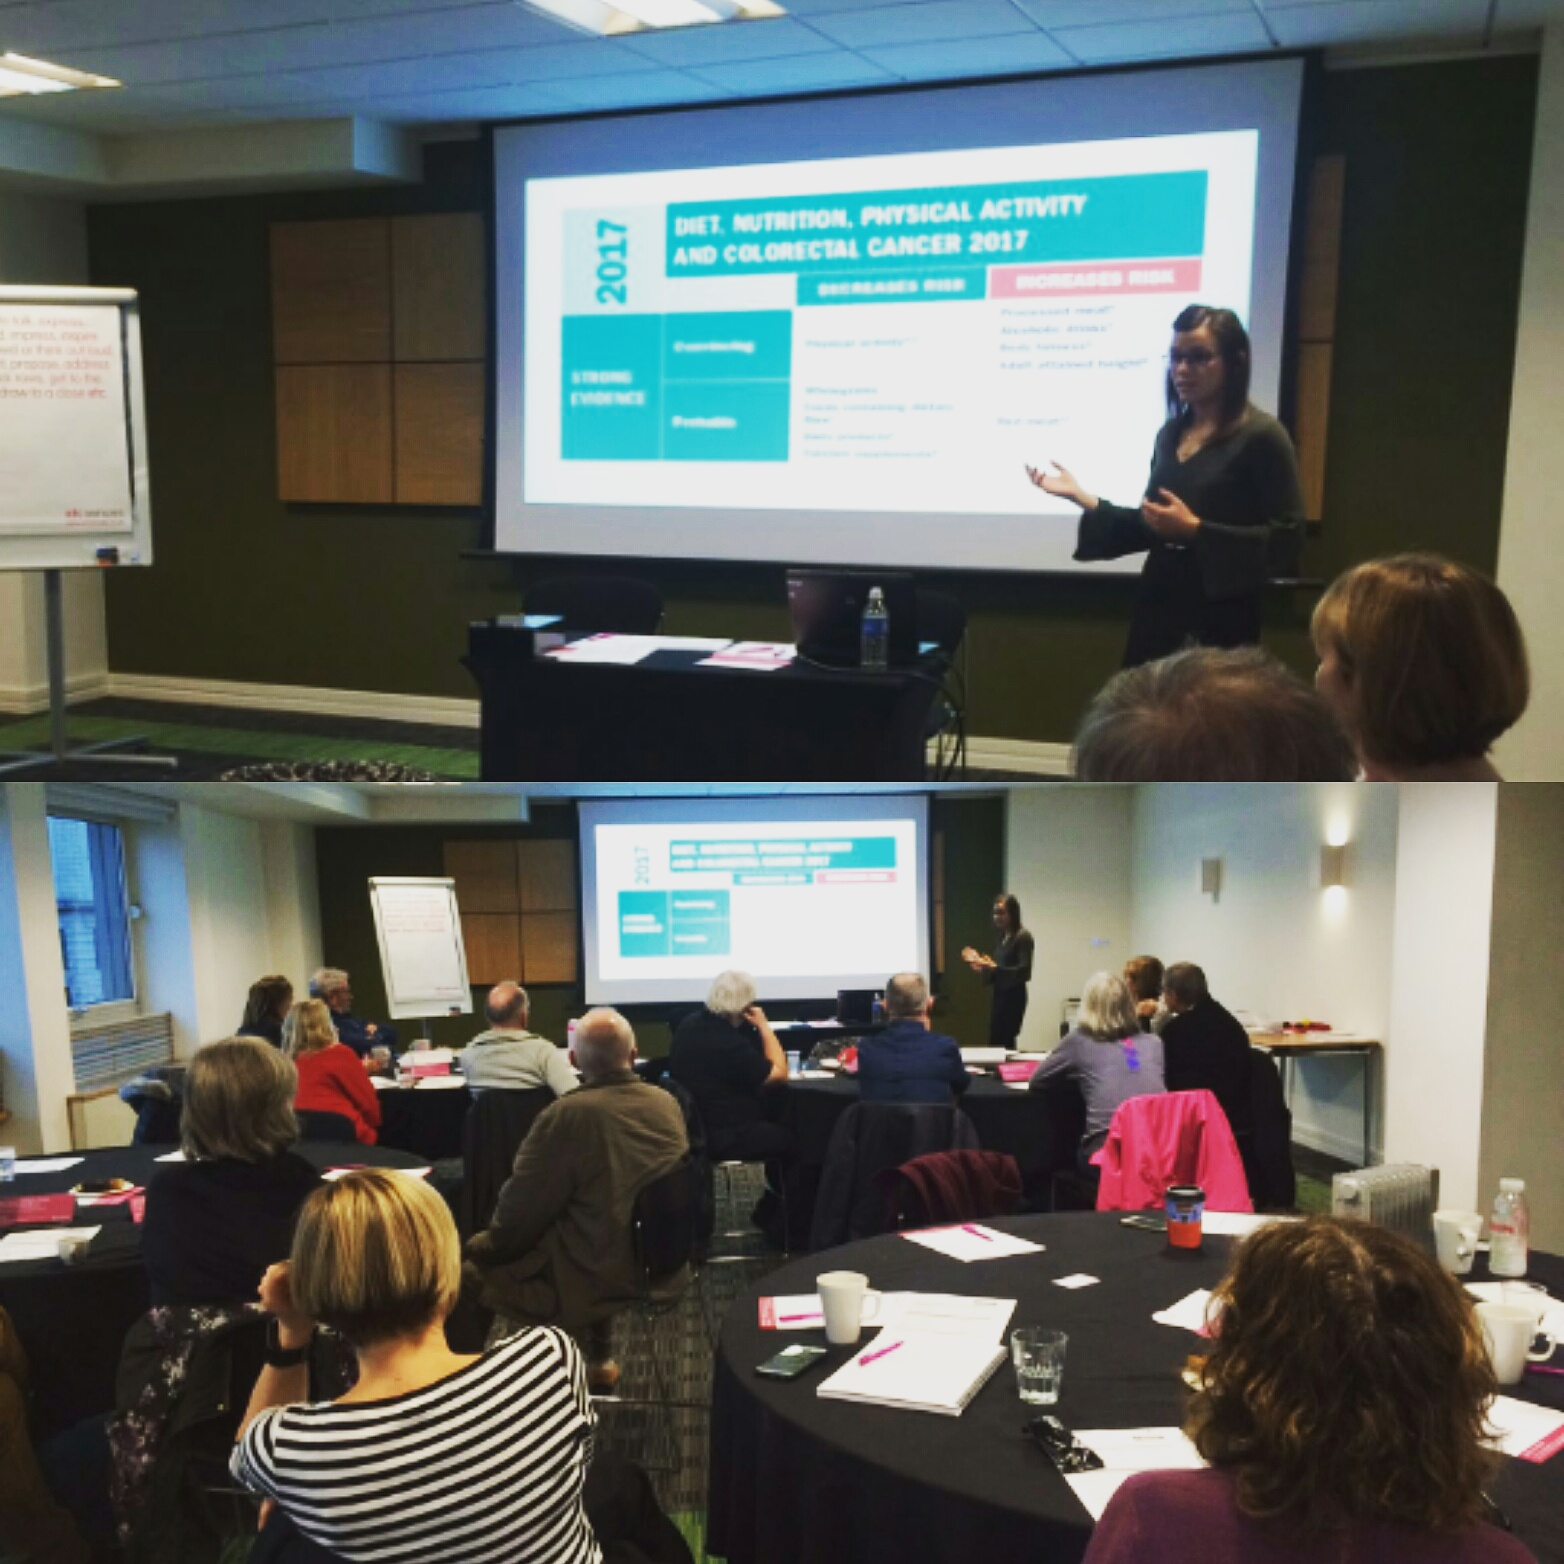 Bowel Cancer UK - Nutrition & Bowel Cancer - Andrea recently spoke to volunteers at Bowel Cancer UK on the latest evidence for nutrition and the risk of bowel cancer.